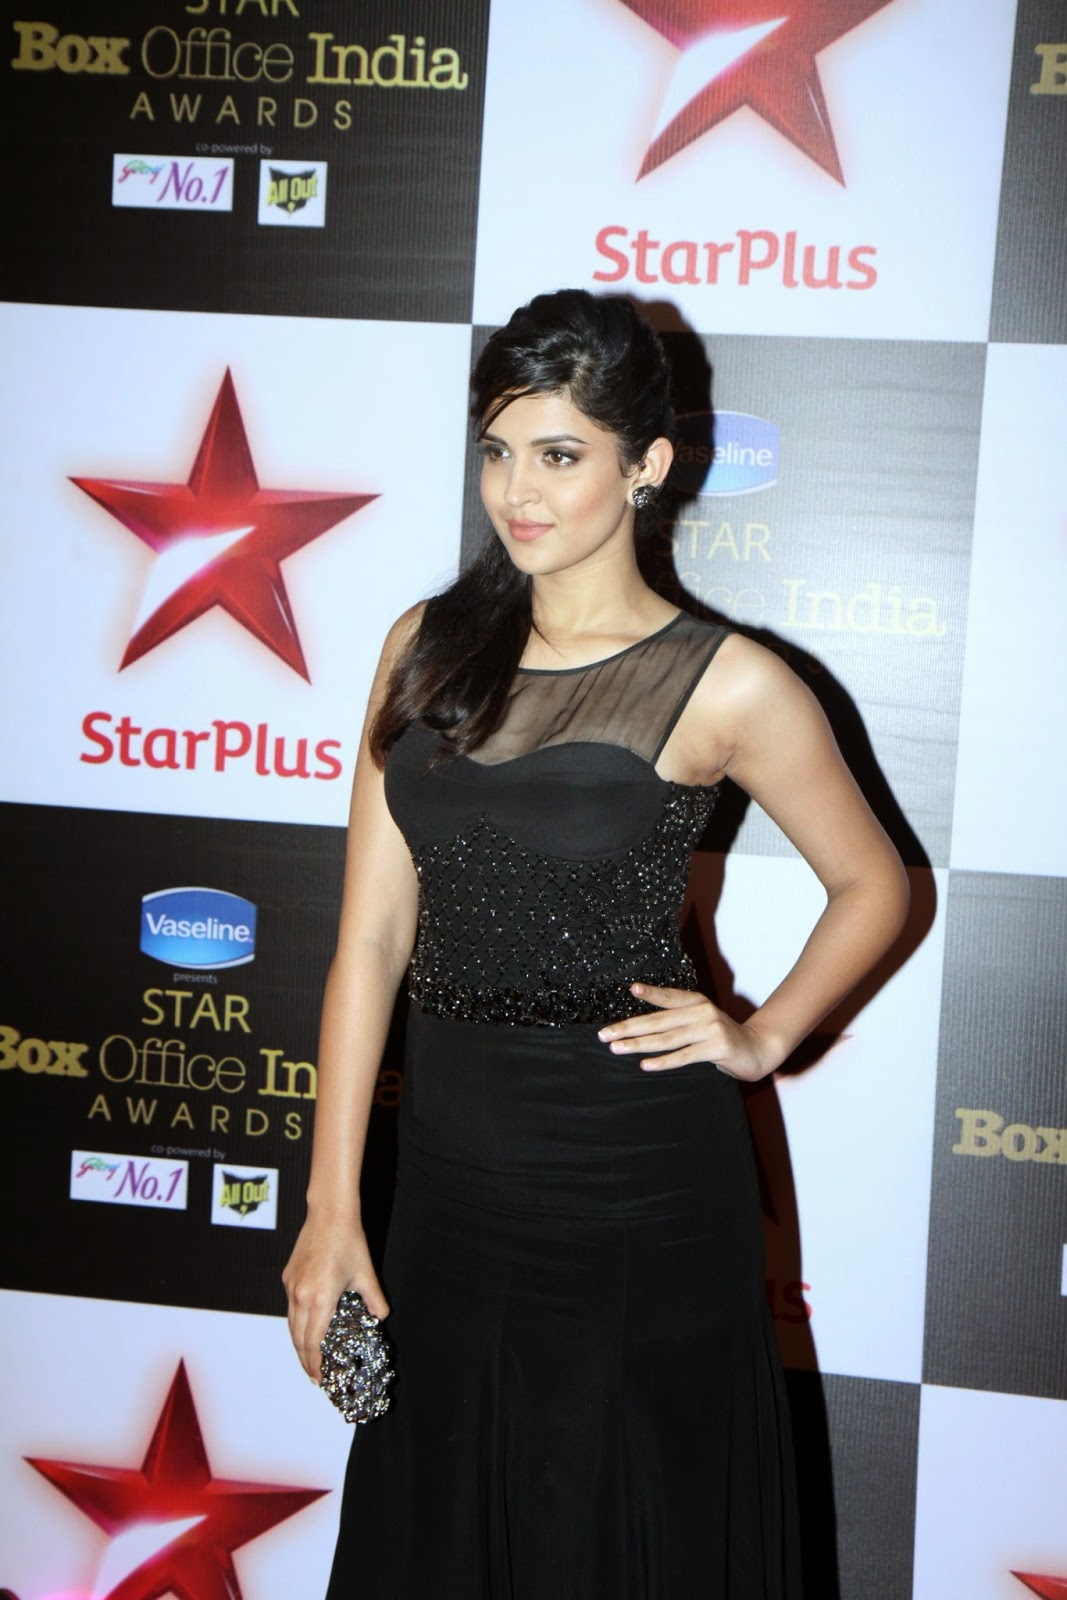 Celebs at The First Star Box Office India Awards